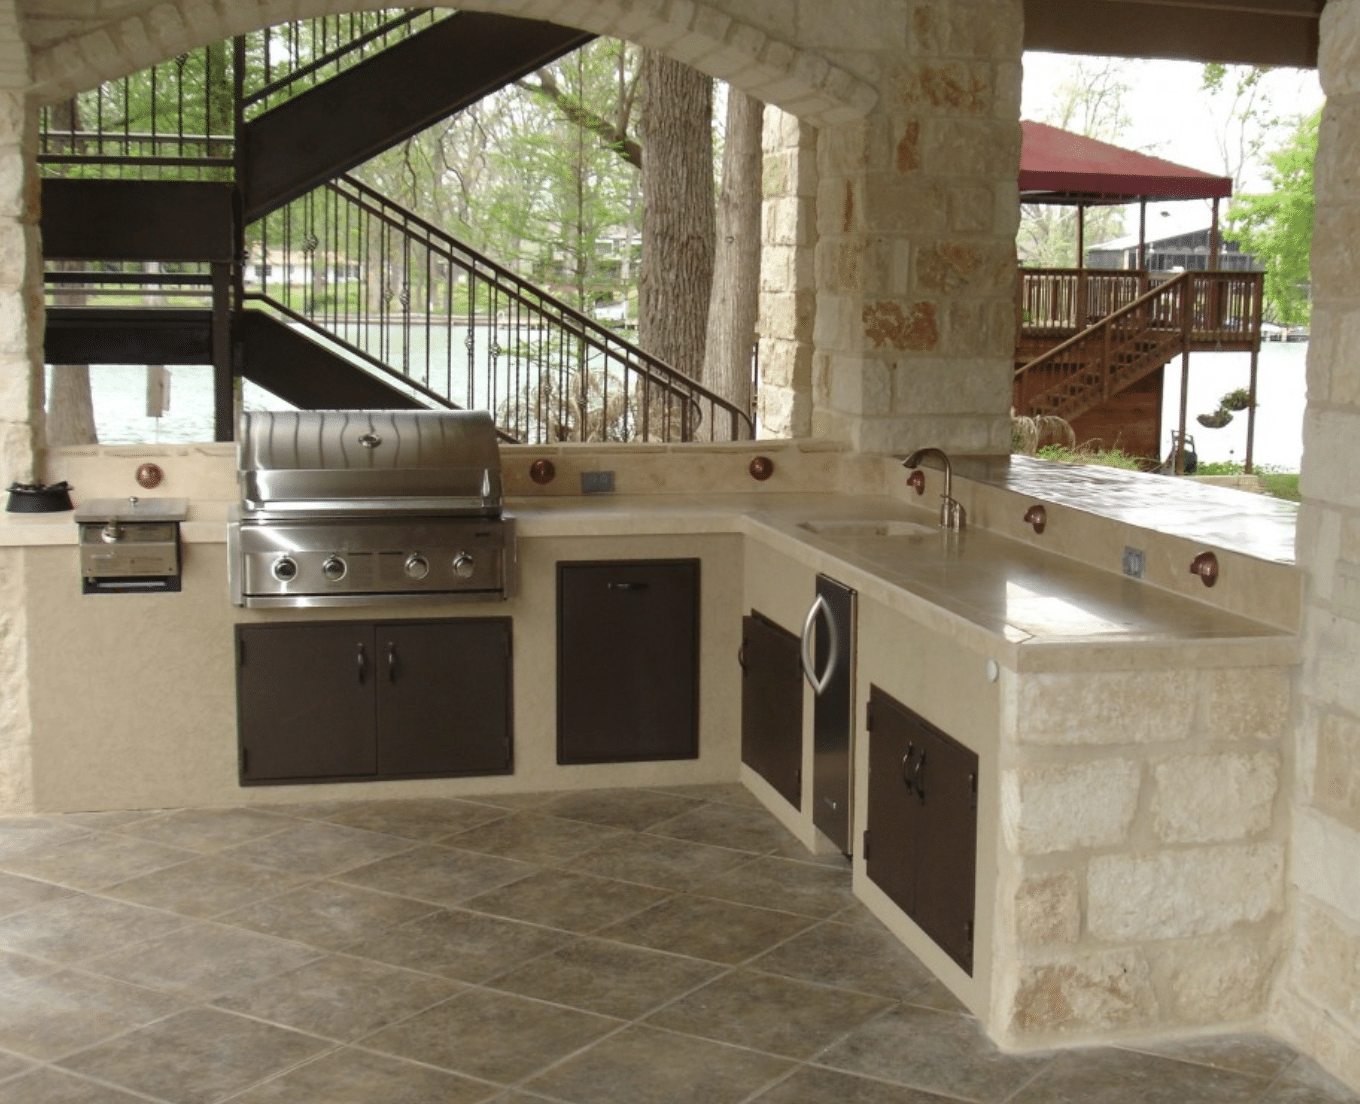 Outdoor Kitchens & BBQ in Blaine, Minnesota and Surrounding Areas